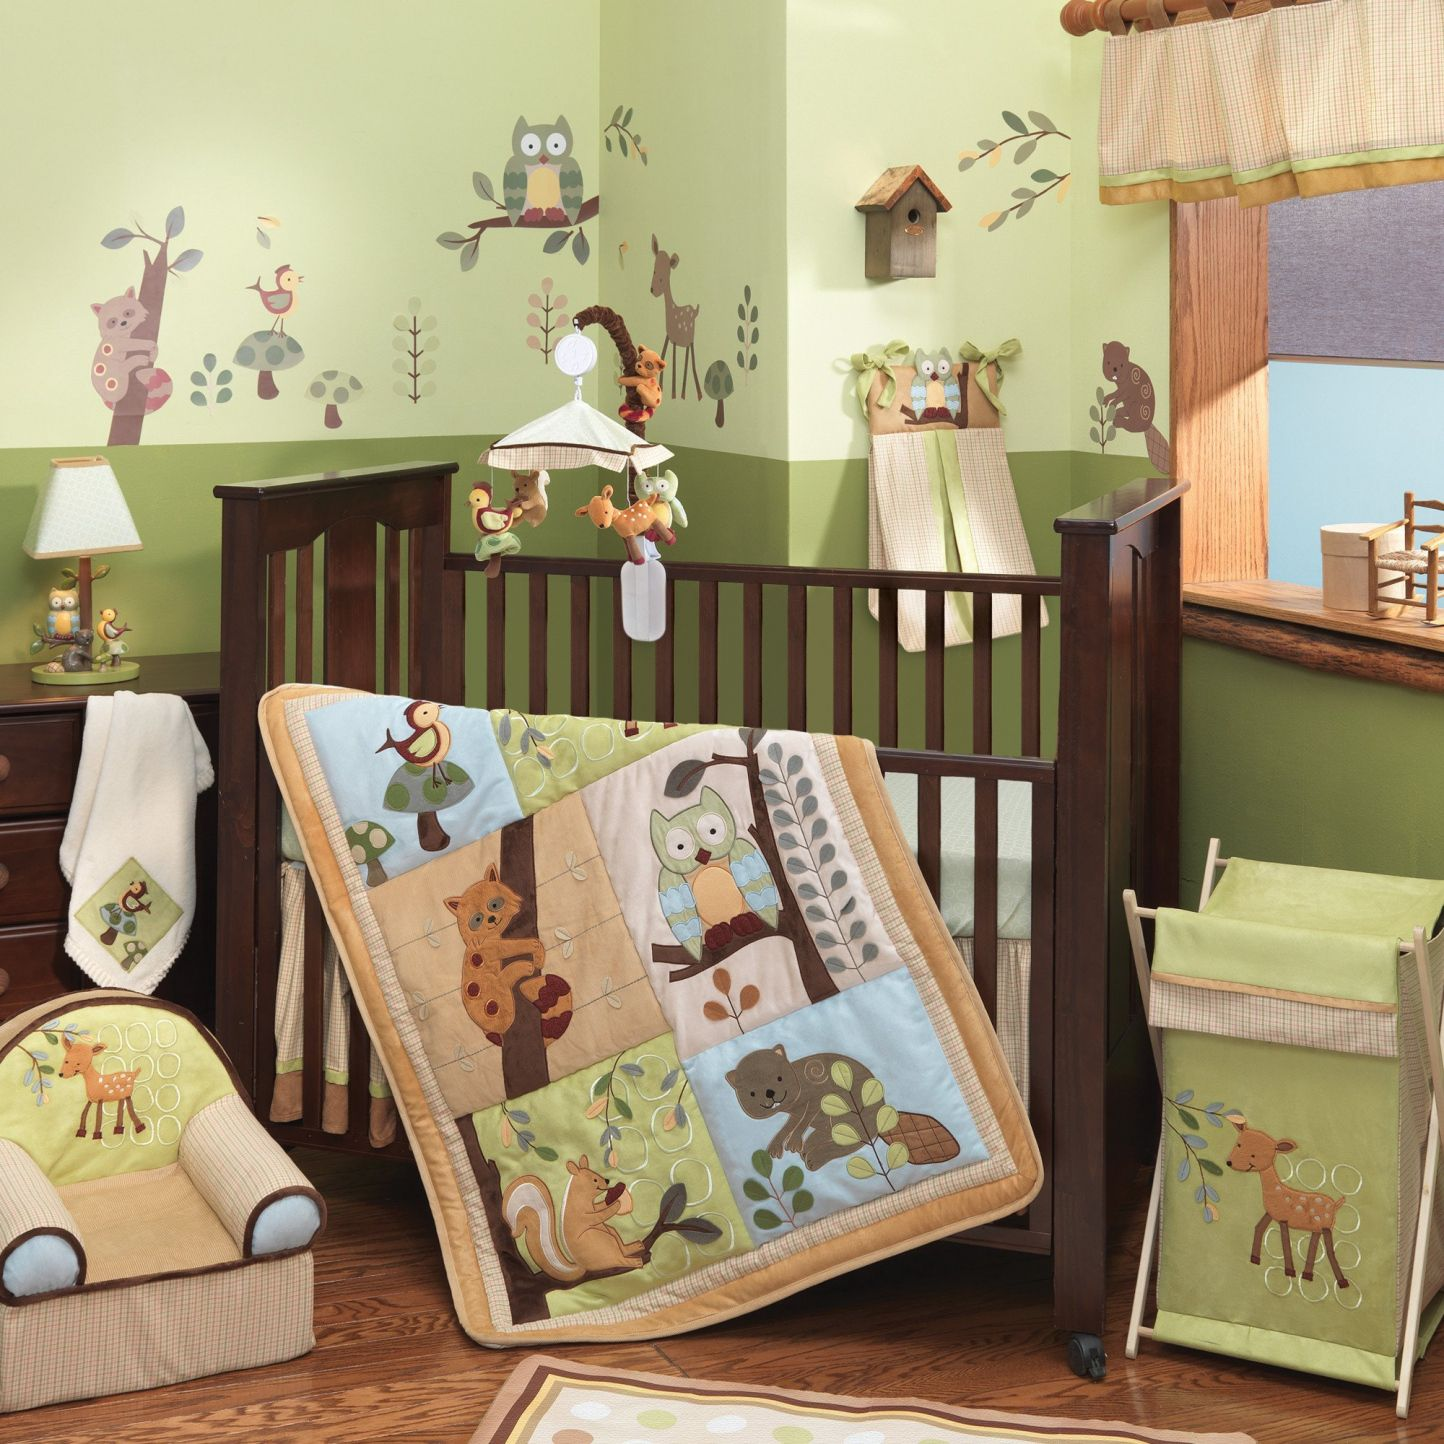 Enchanted Forest Baby Room Interior Paint Color Ideas Check More At Http Www Chulaniphotography